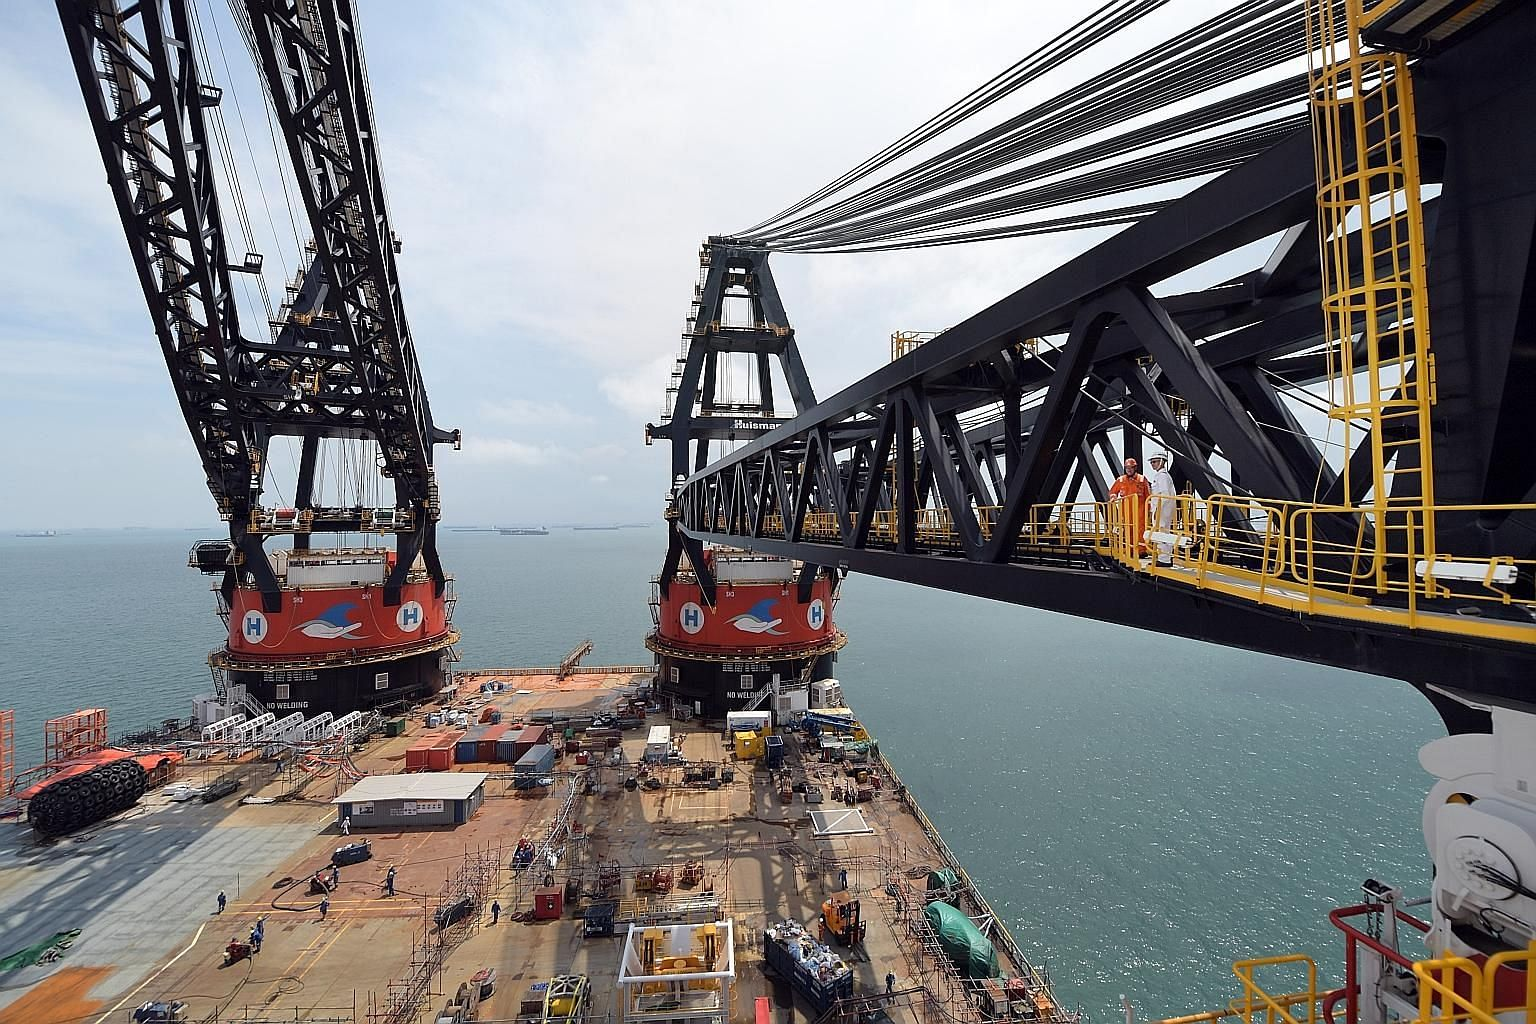 Workers are dwarfed by the Sleipnir's eight column legs, each 23.75m tall. The legs conceal the ballast tanks, which take in or release sea water to adjust the vessel's draft (the vertical distance between the waterline and the bottom of the hull), a